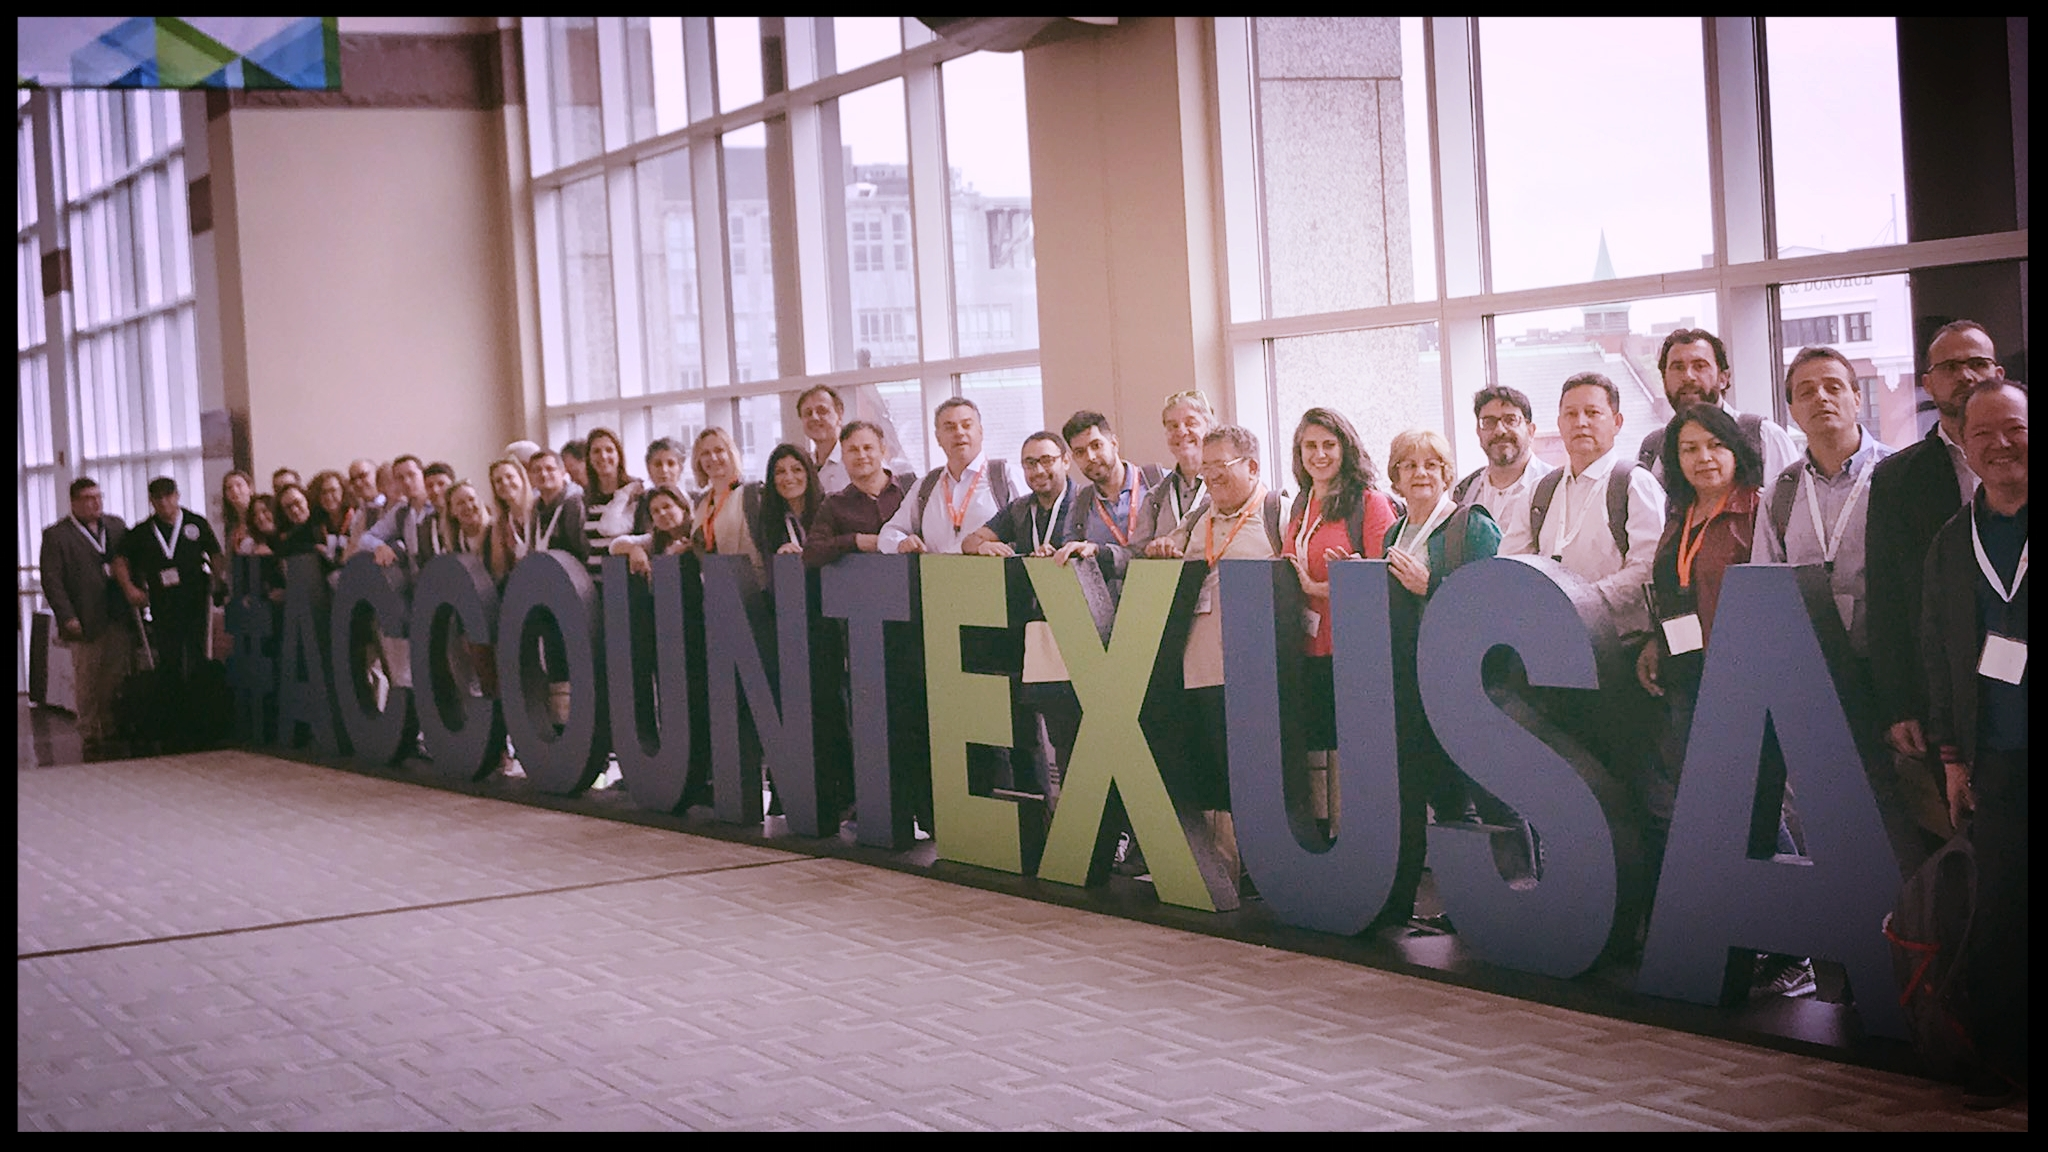 Accountants and bookkeepers at Accountex USA 2017 in Boston, Massachusetts